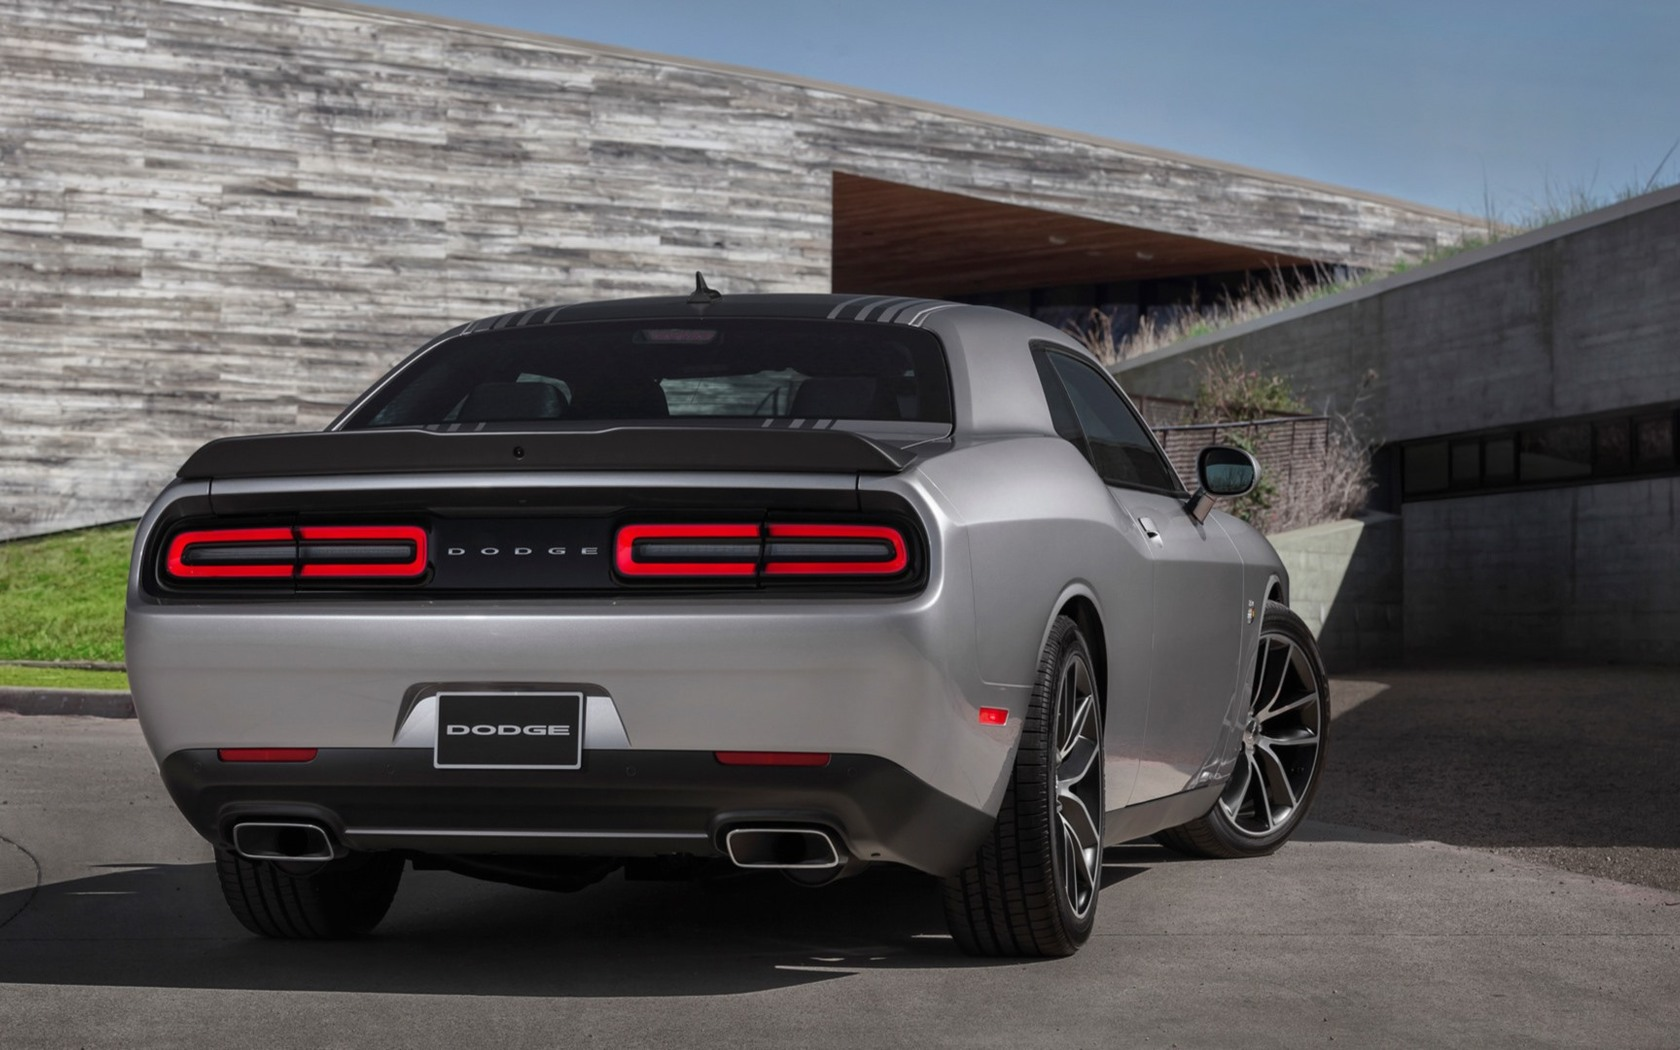 2015 Dodge Challenger Widescreen Wallpaper   13808 1680x1050